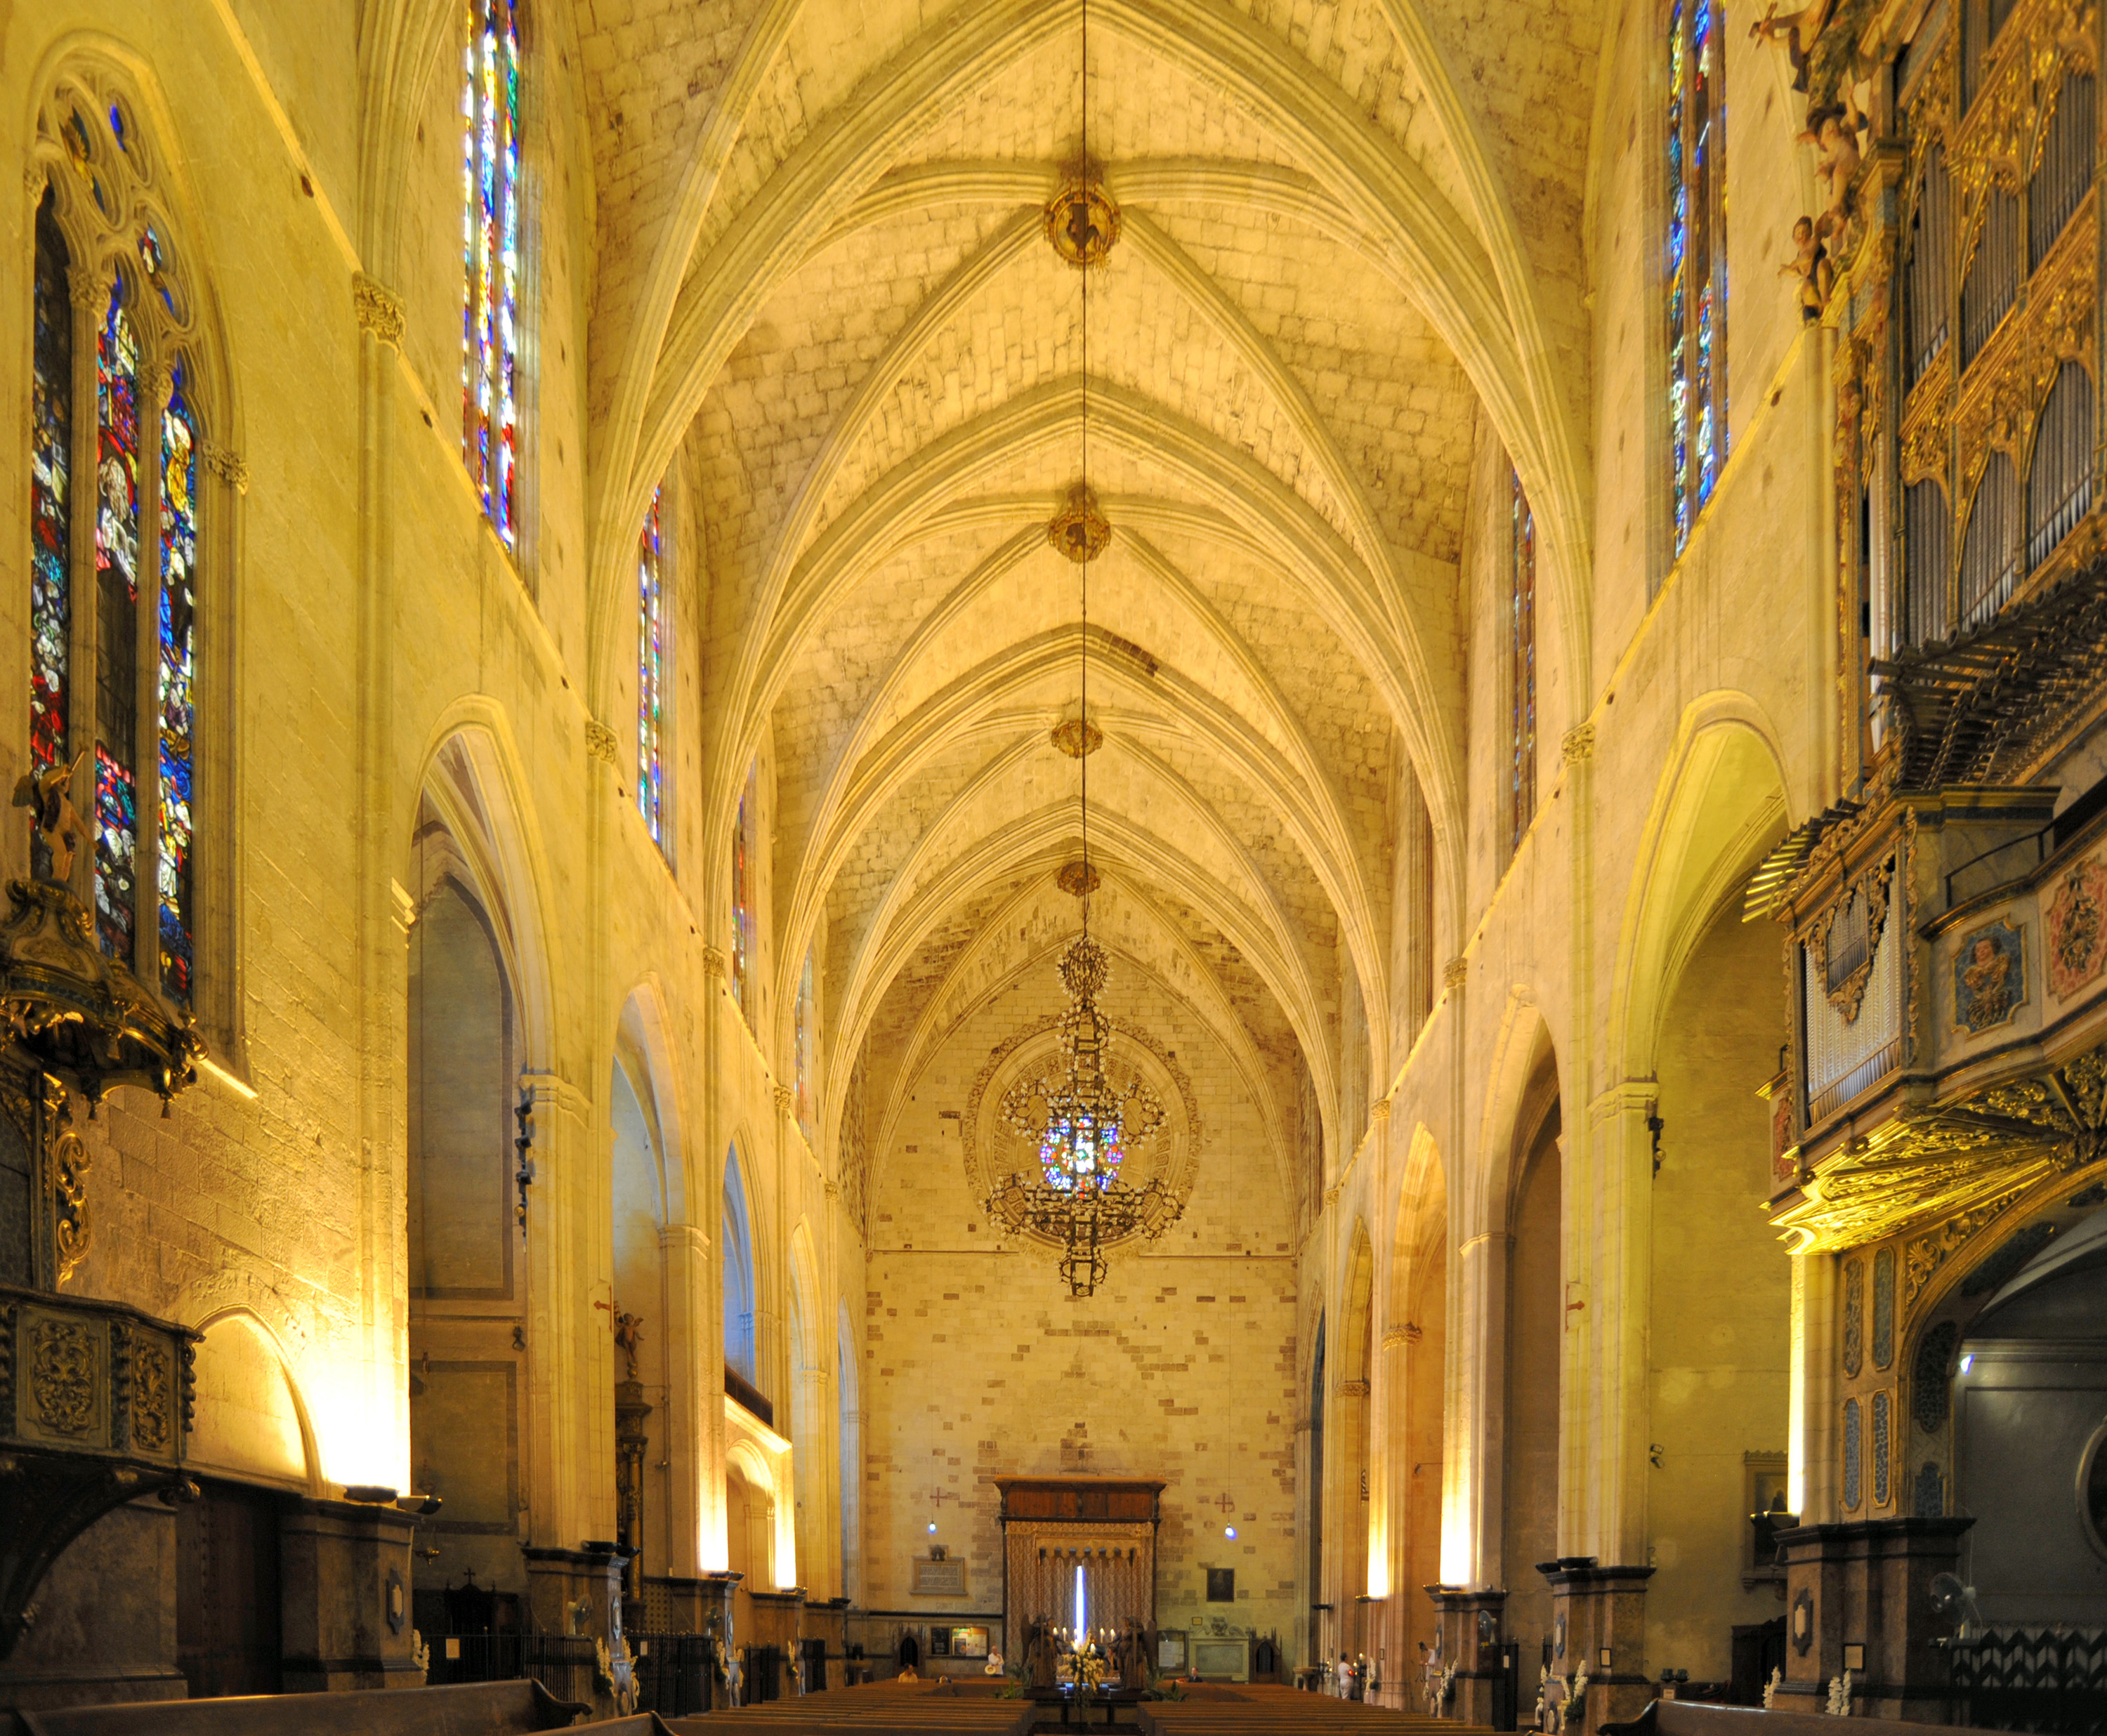 The old city of palma de mallorca the franciscan monastery for The franciscan